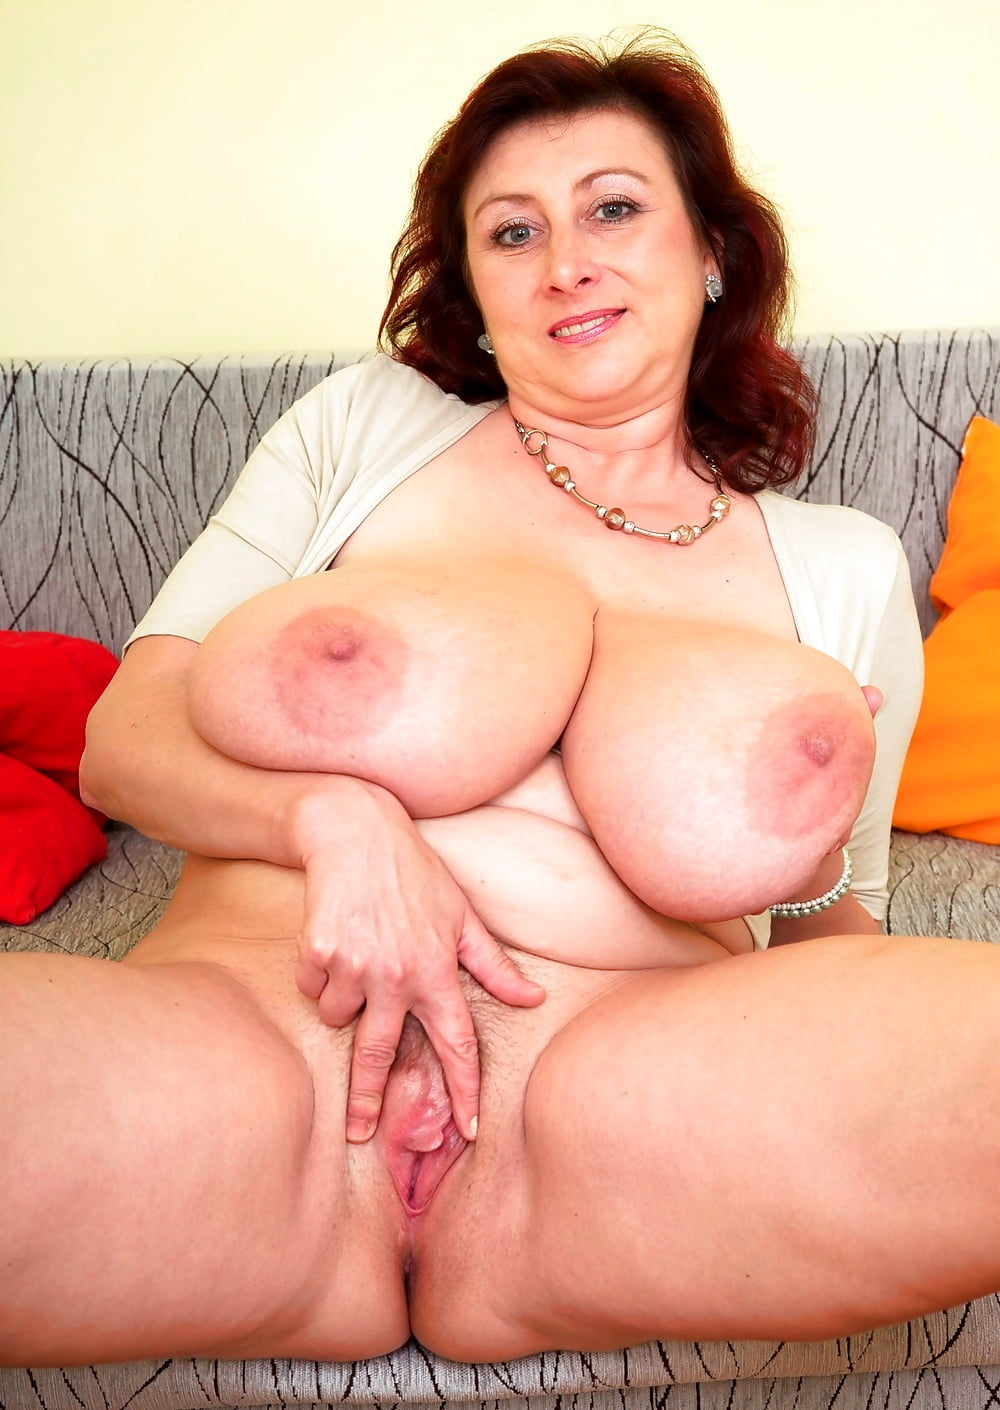 Naked matures big breast sex, brown butt gallery